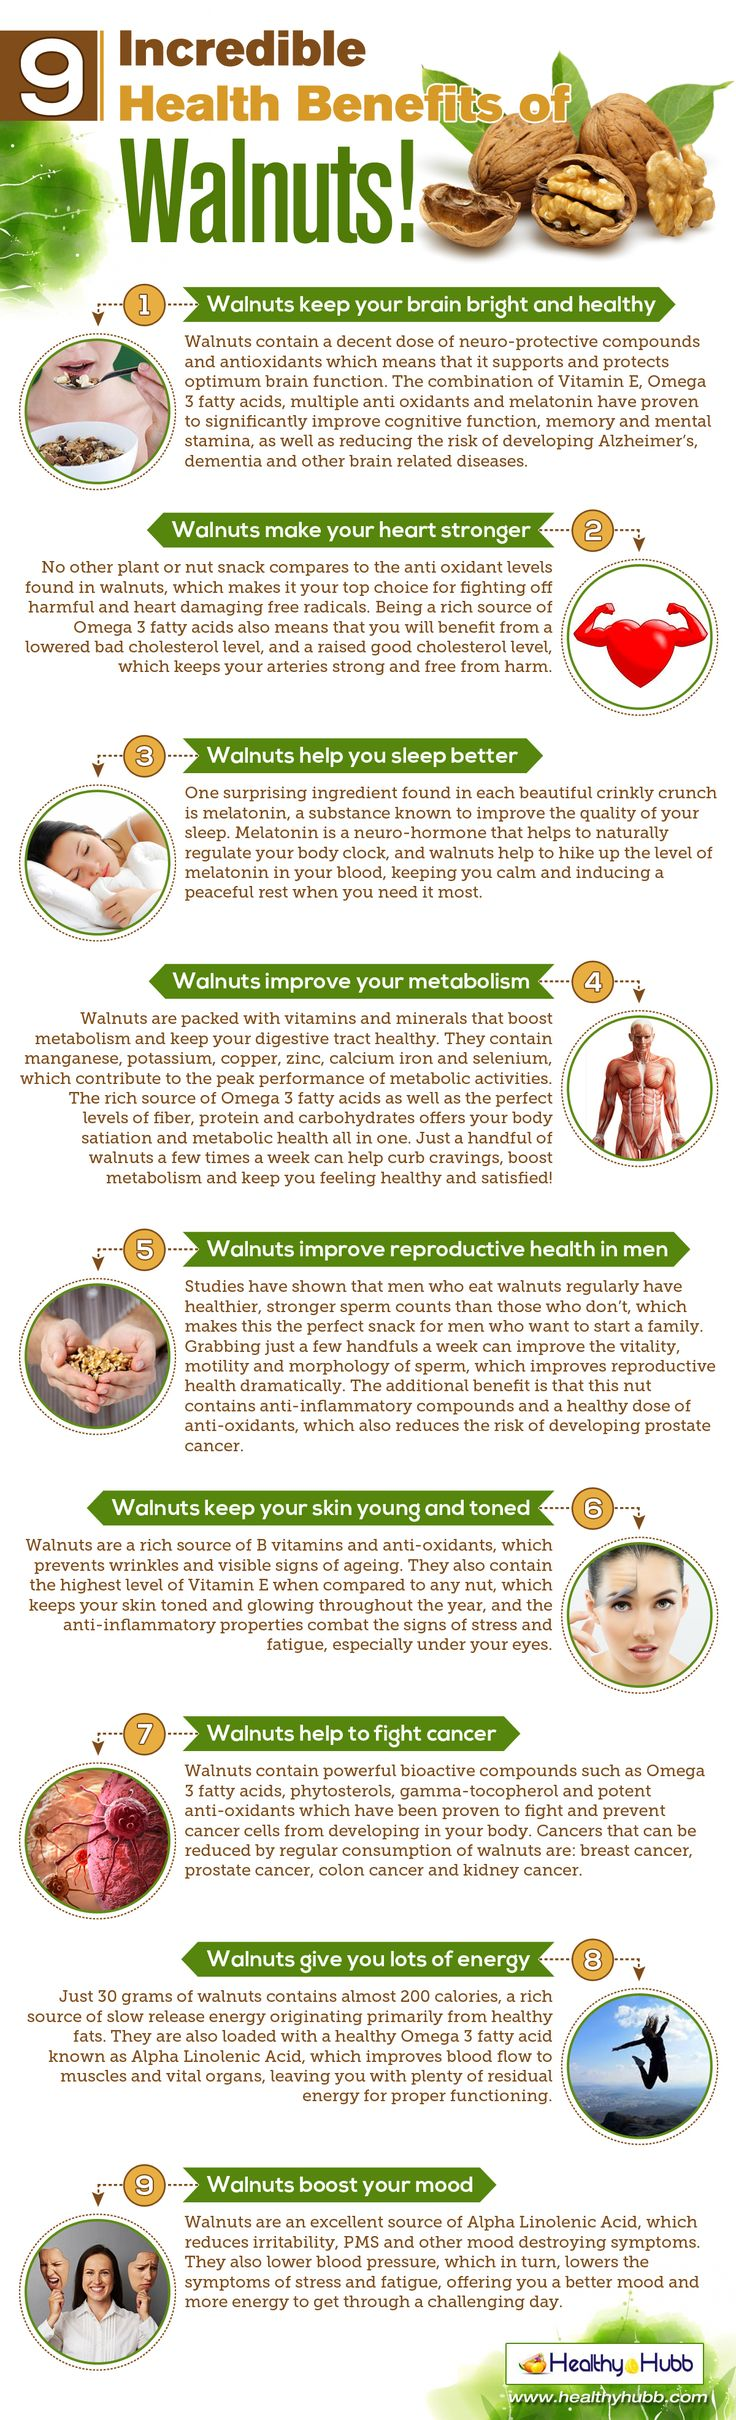 Walnuts are packed with many Health Benefits which benefit the body and the brain. http://healthyhubb.com/9-health-benefits-of-walnuts/